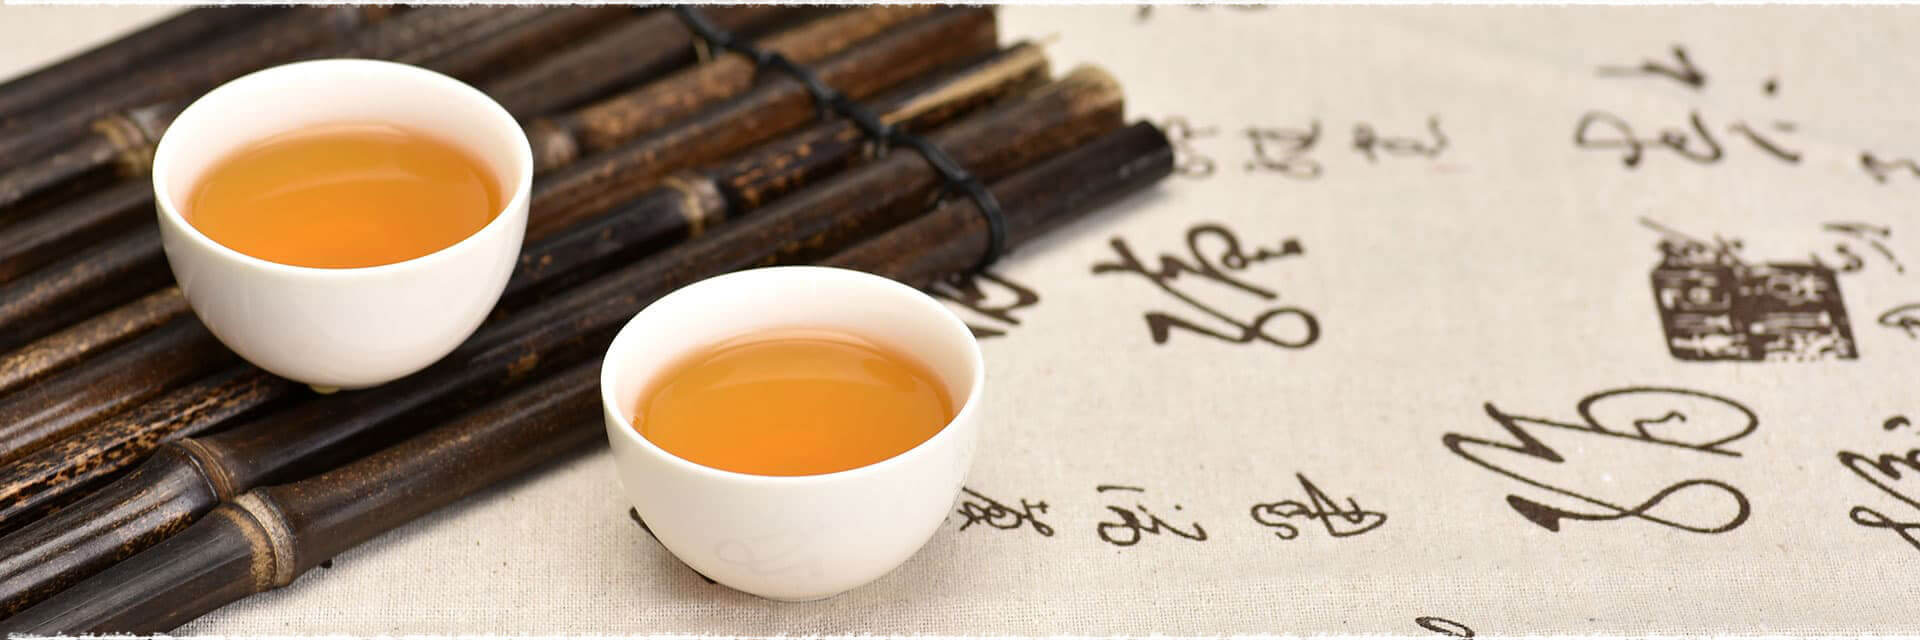 How to Choose Bailin Gongfu Black Tea?